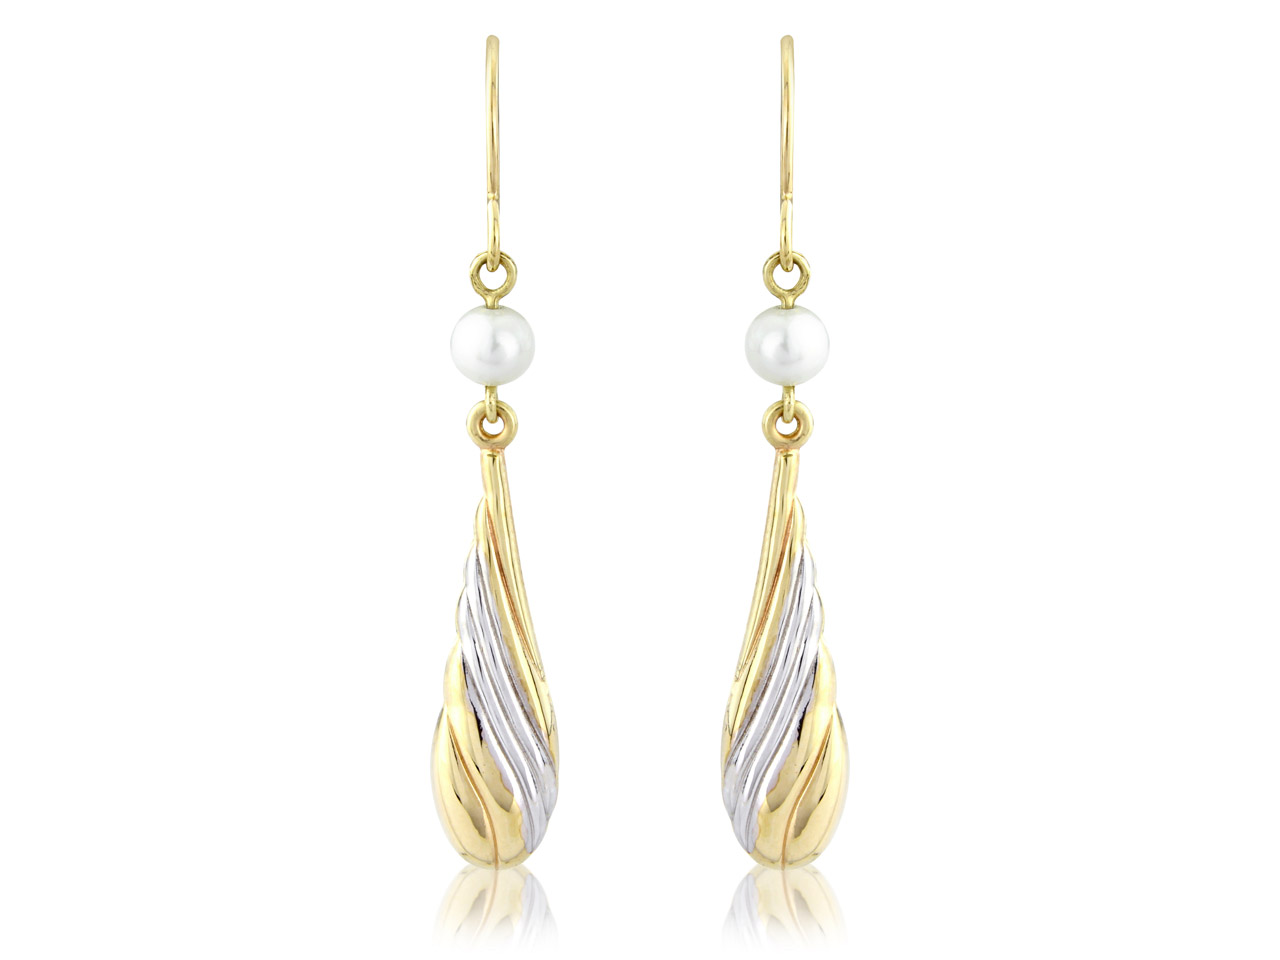 9ct Yellow Dropper Design Earrings Rhodium Plated Design